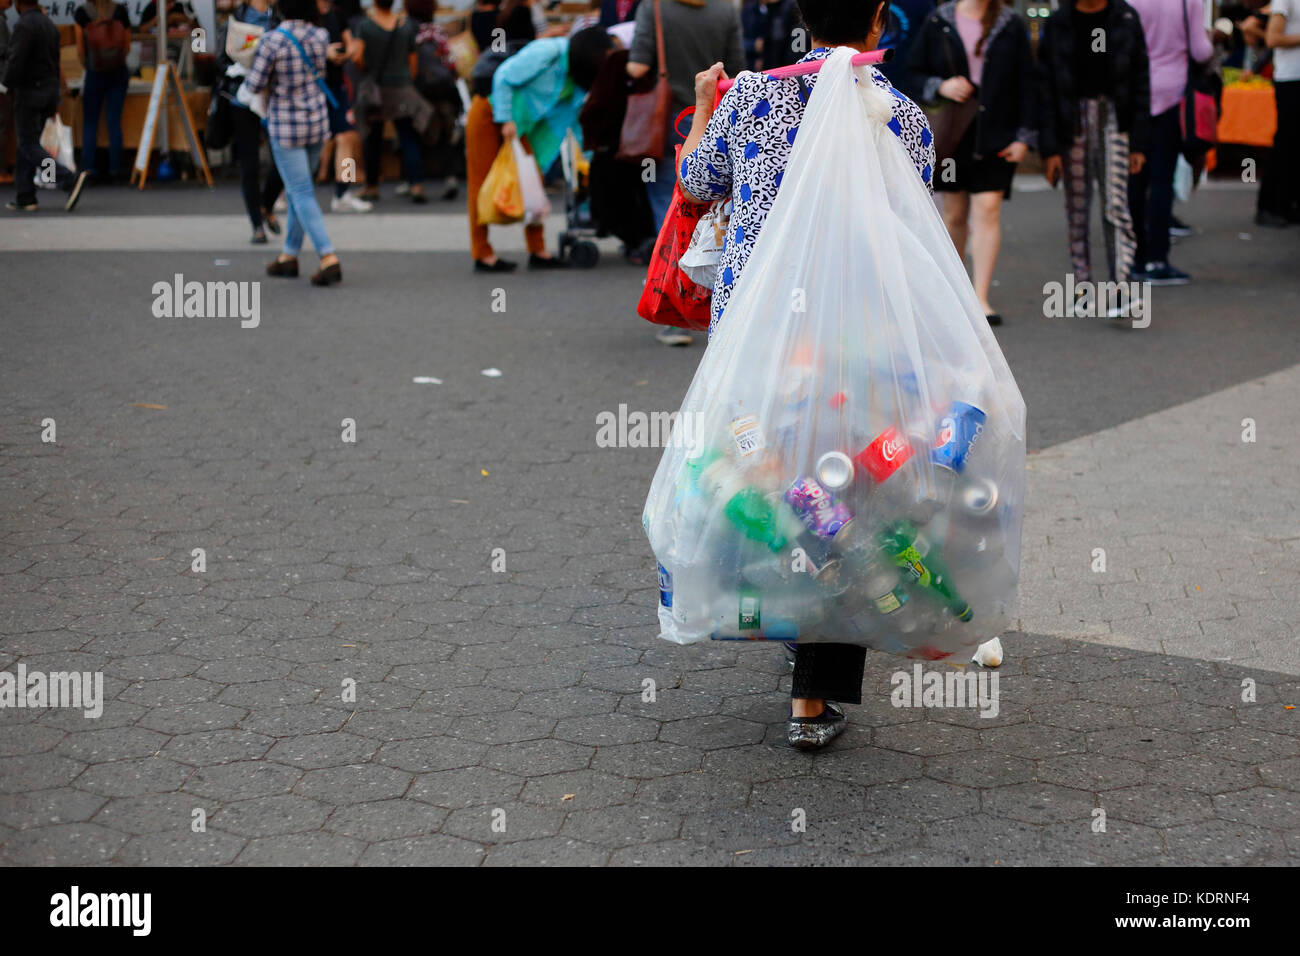 A person in the informal economy carrying a bag of bottles, cans, and recyclables. - Stock Image